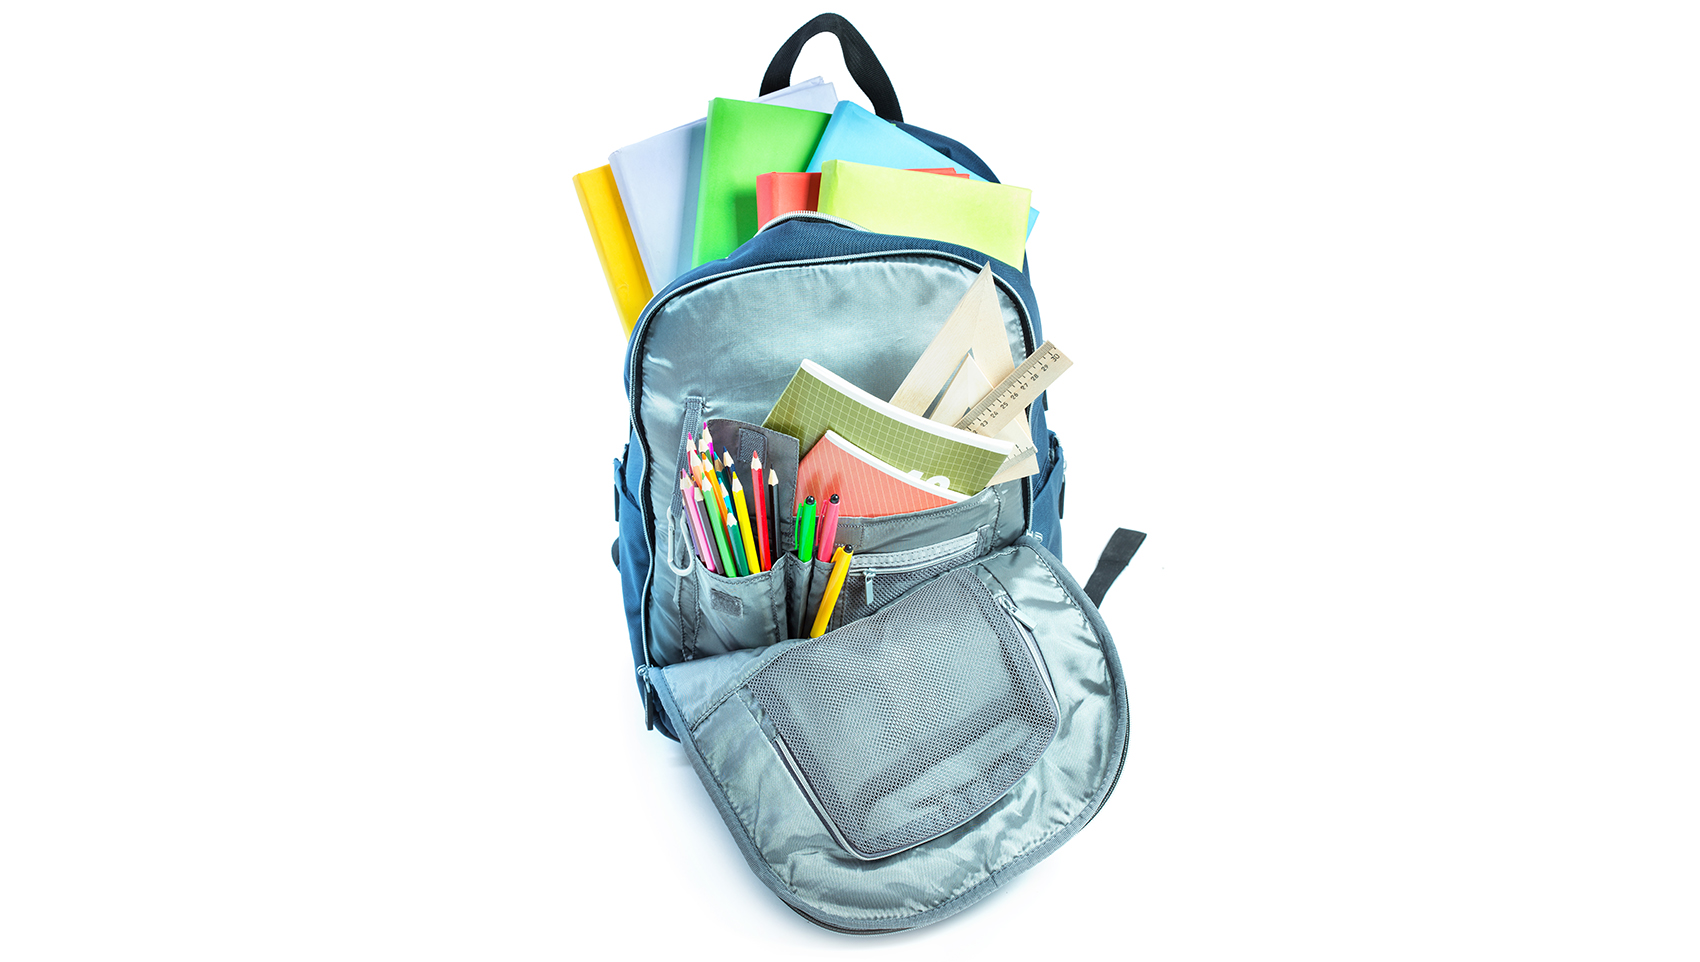 Backpack full of school supplies